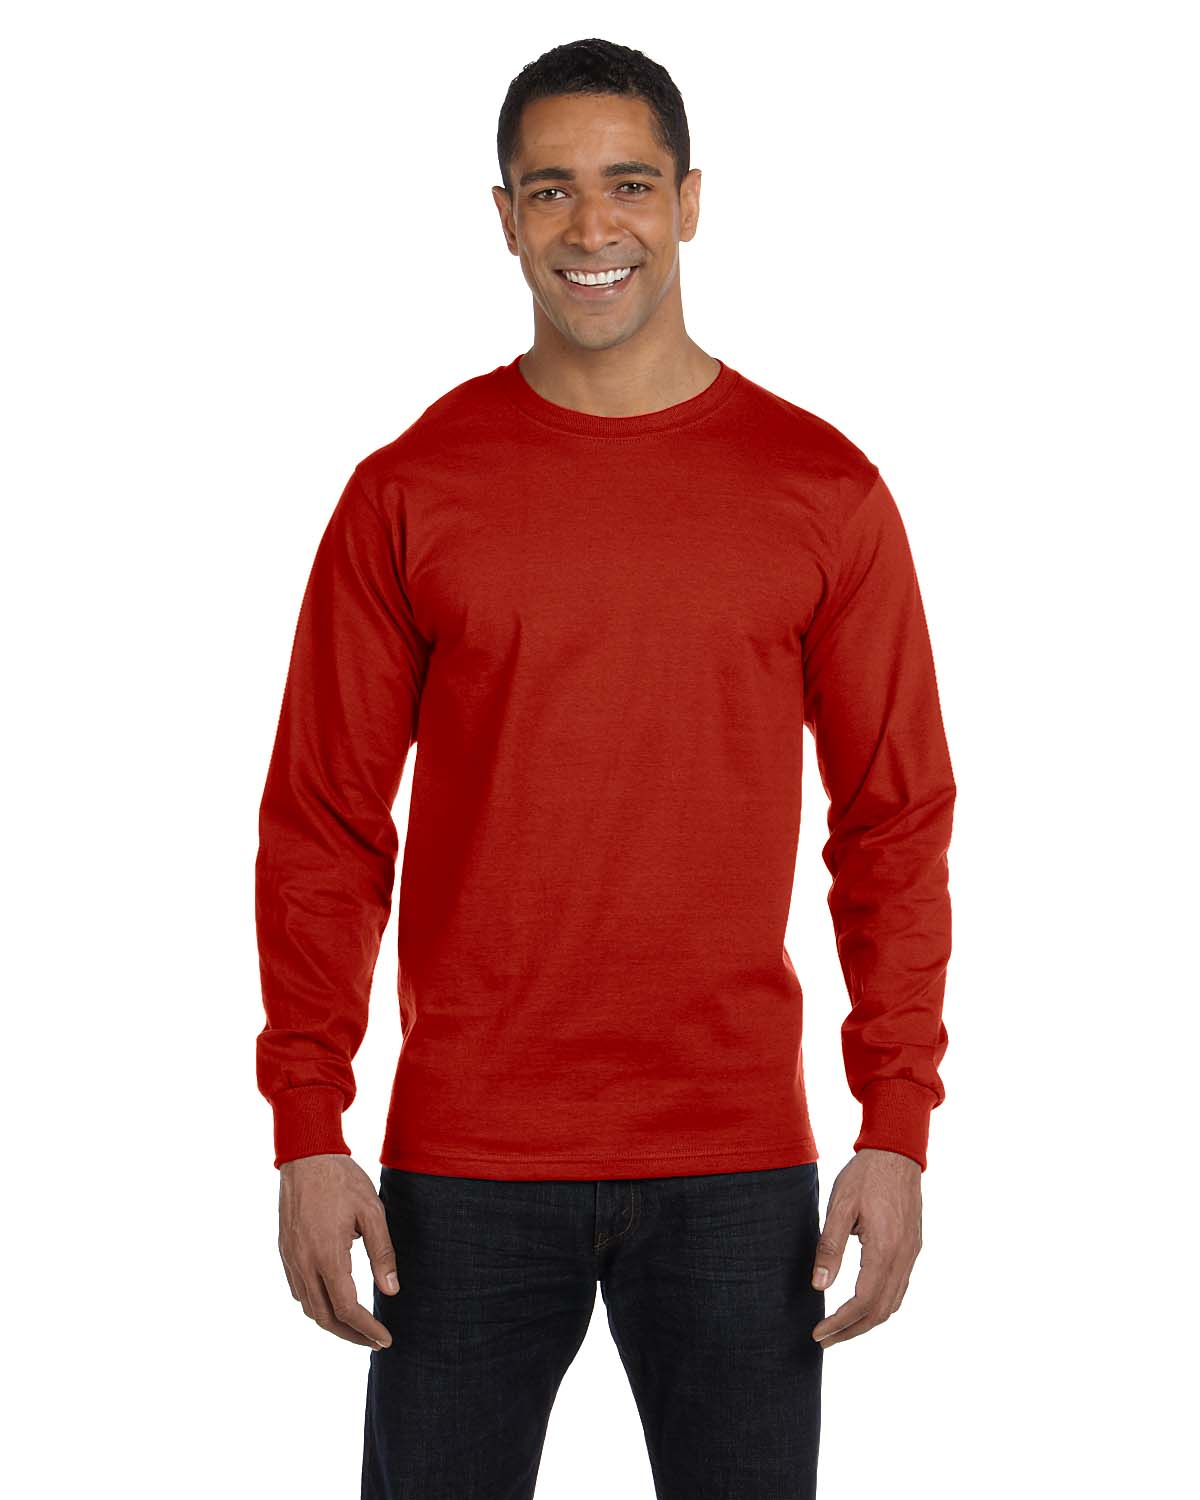 Hanes 5.2 Oz. ComfortSoft® Cotton Long-Sleeve T-Shirt